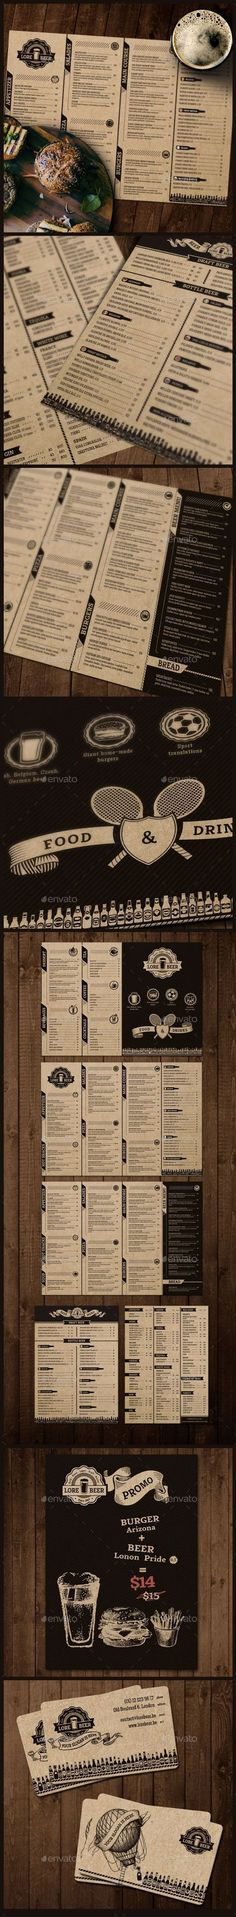 A different restaurant menu design can really help your restaurant stand out from the others